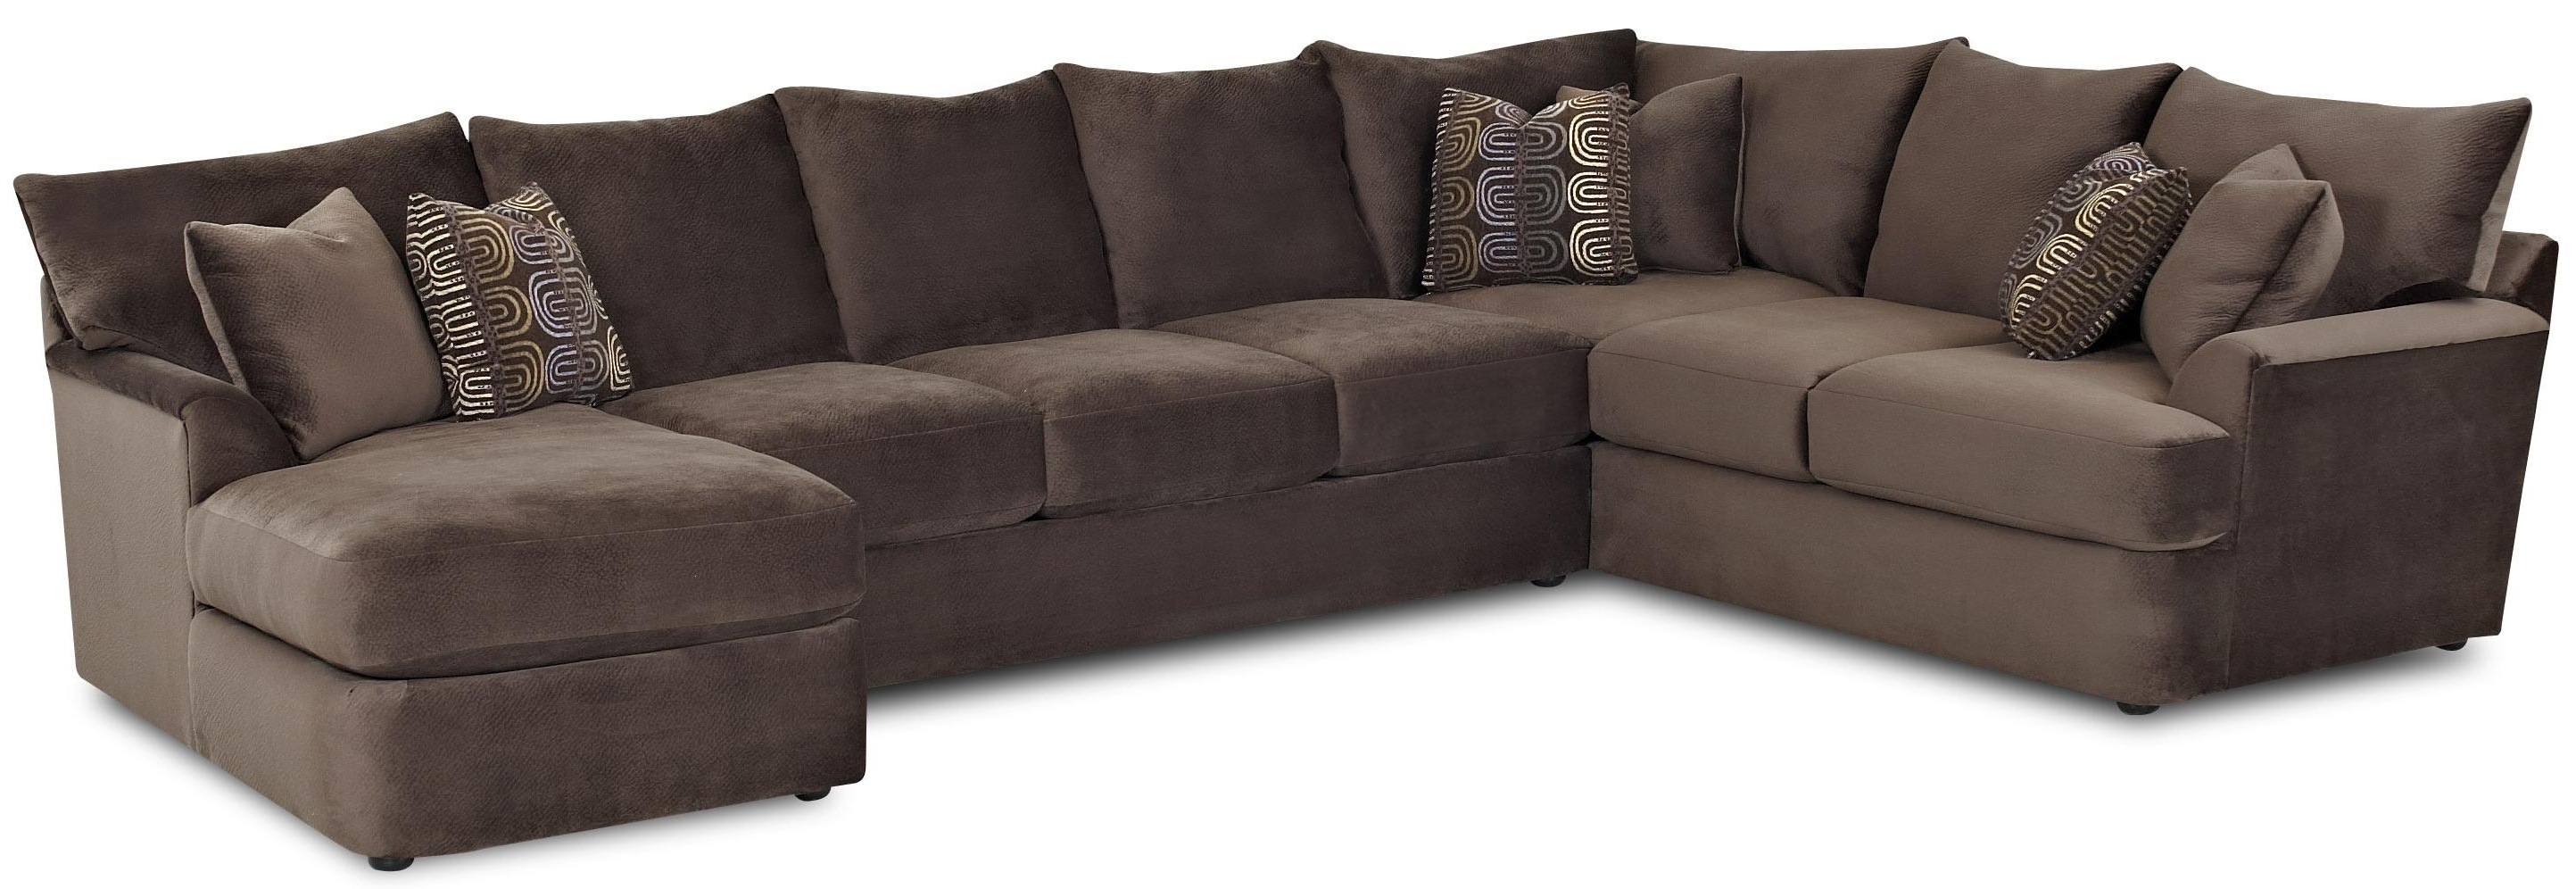 L Shaped Sectional Sofas pertaining to Most Recent Klaussner Findley L-Shaped Sectional Sofa With Right Chaise - Ahfa